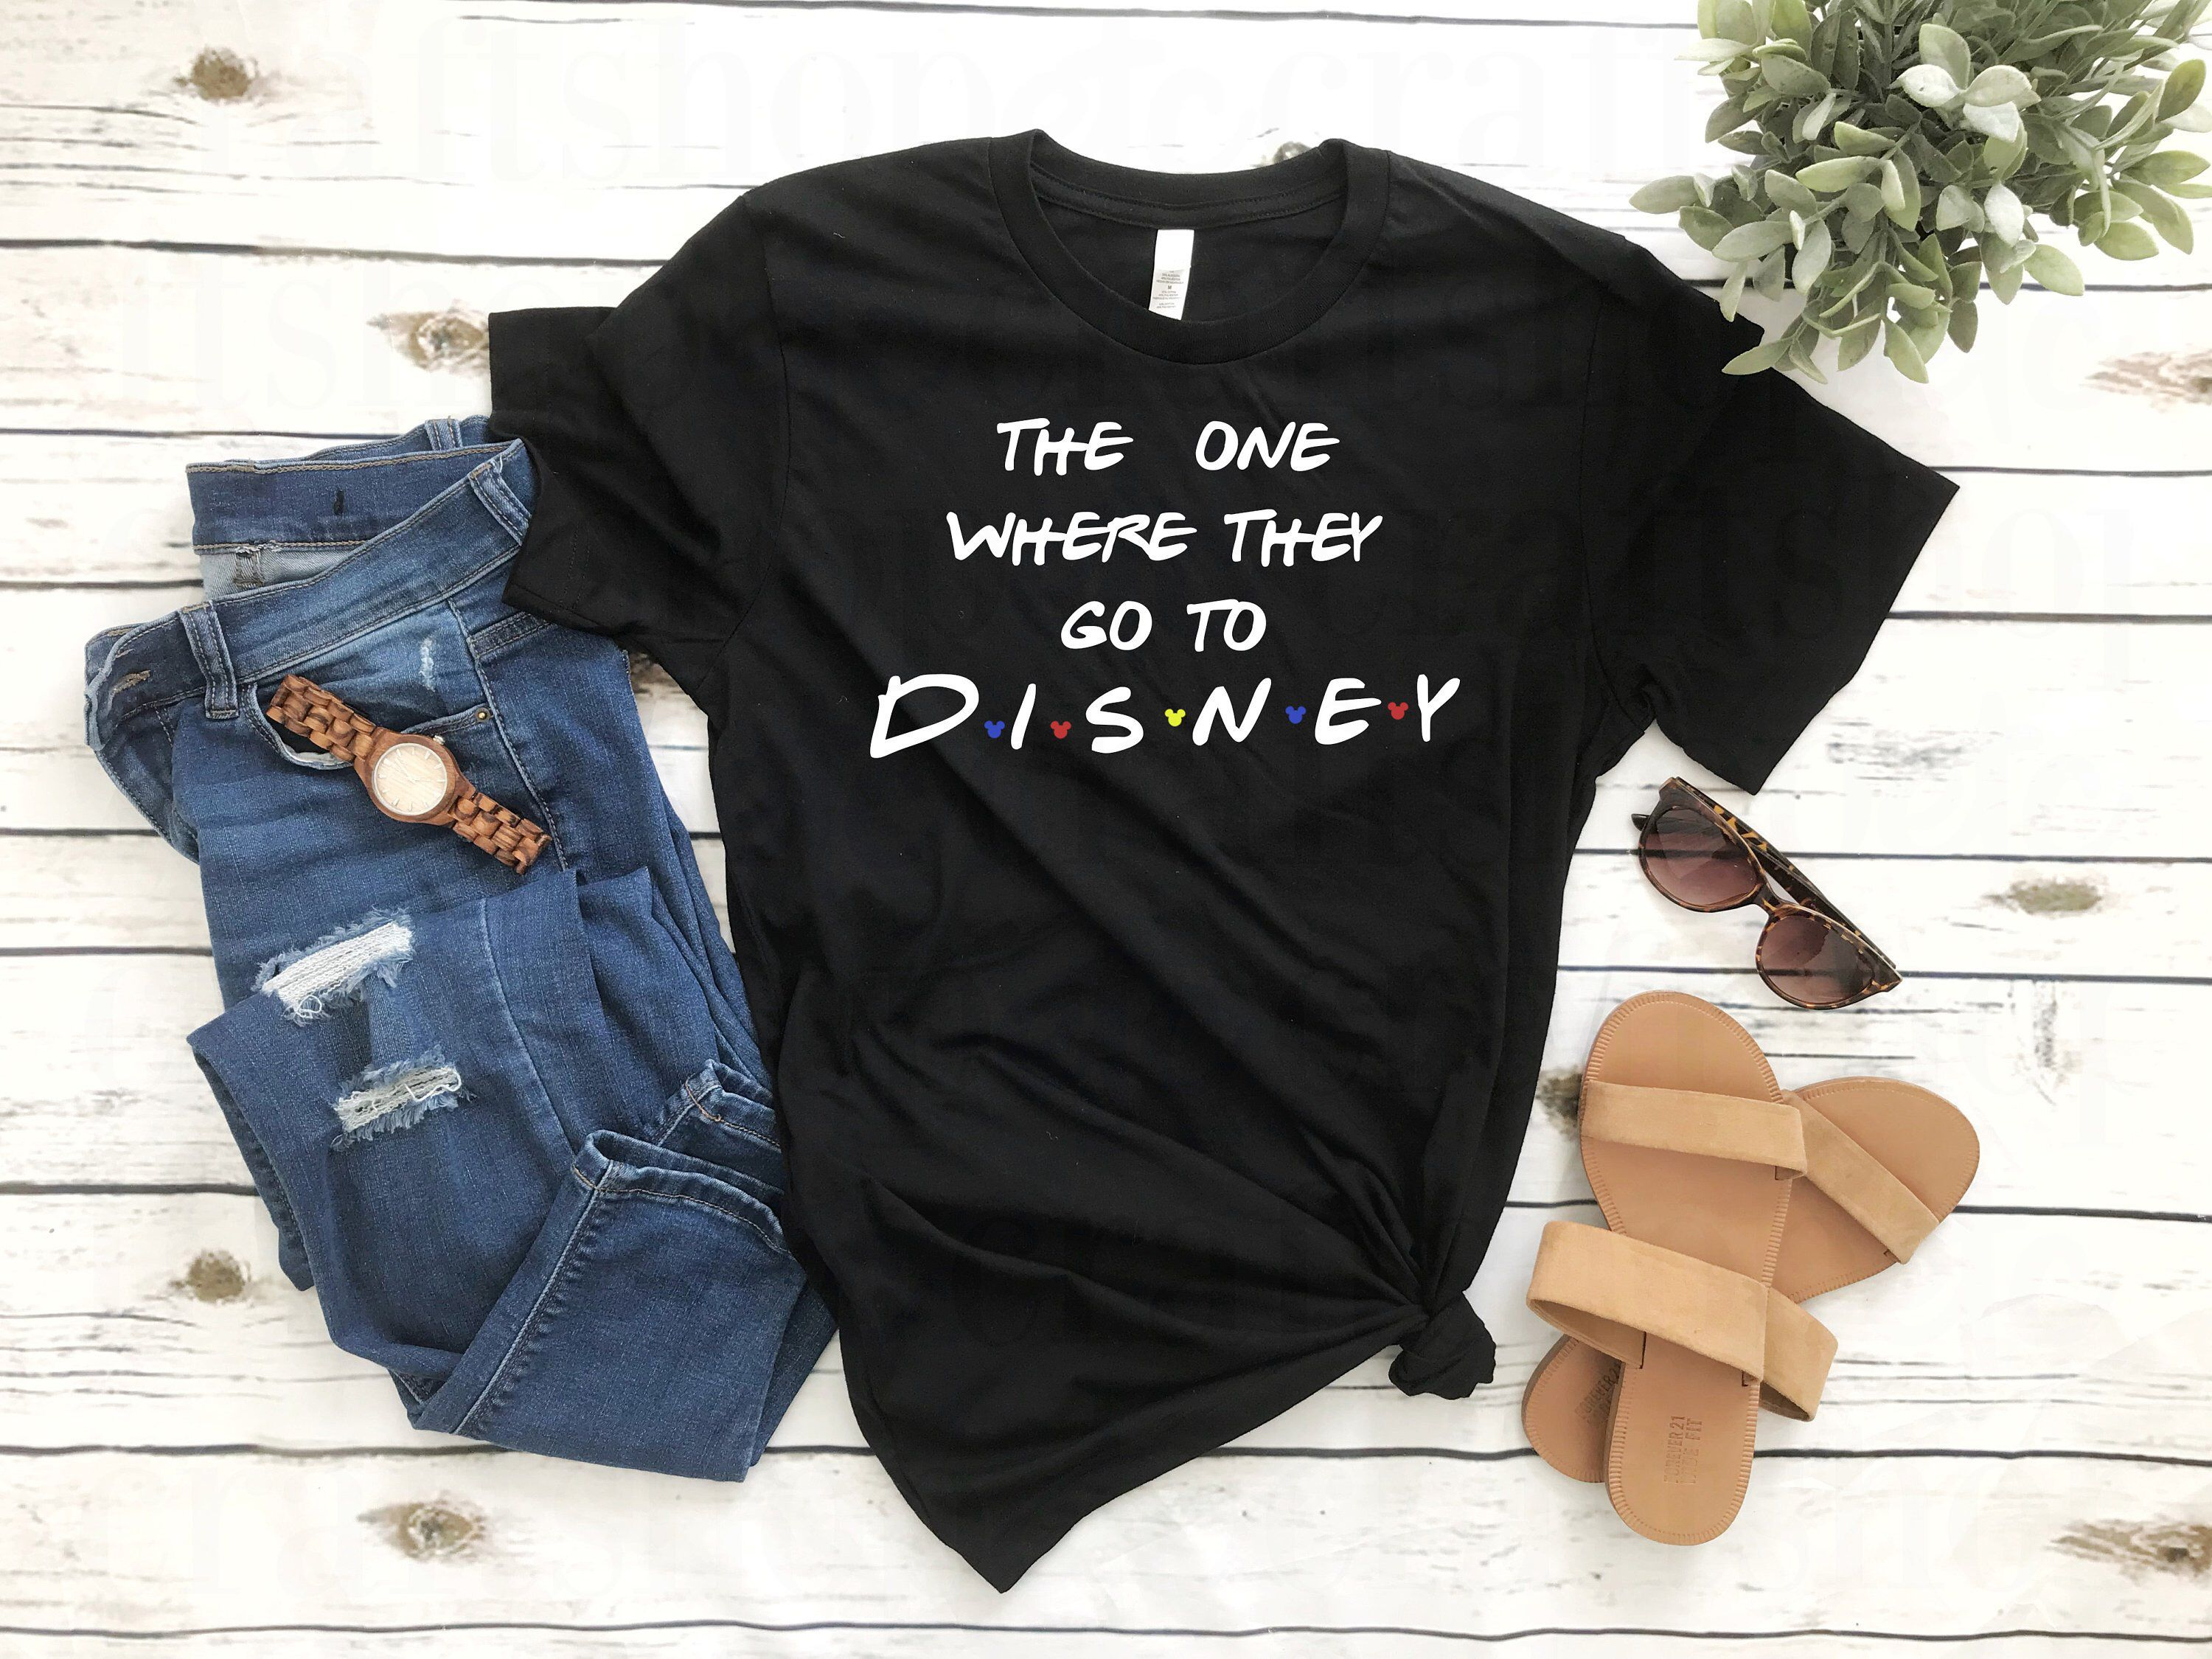 Can These Shirts Be Any Cuter Friends Fanatics Unite Friends Disney Shirt The One Where They Go To Disney Graphic Tee Outfits Mother Shirts Graphic Tees